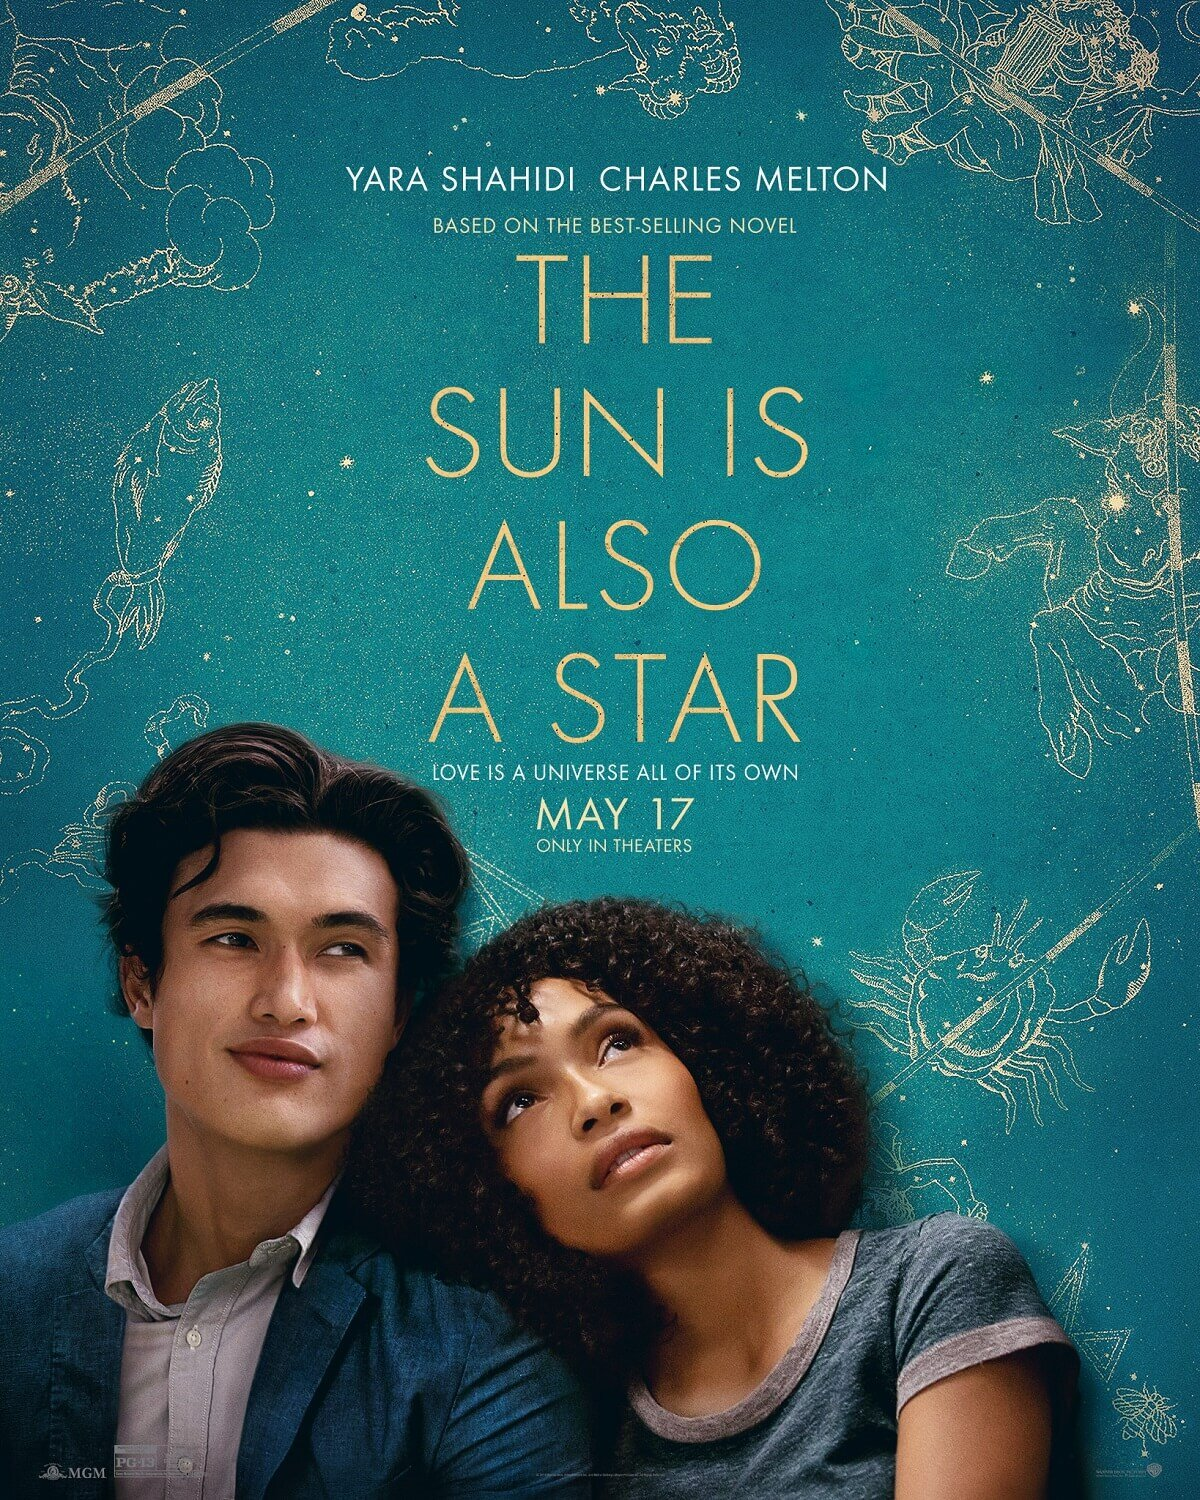 the-sun-is-also-a-star film.jpg